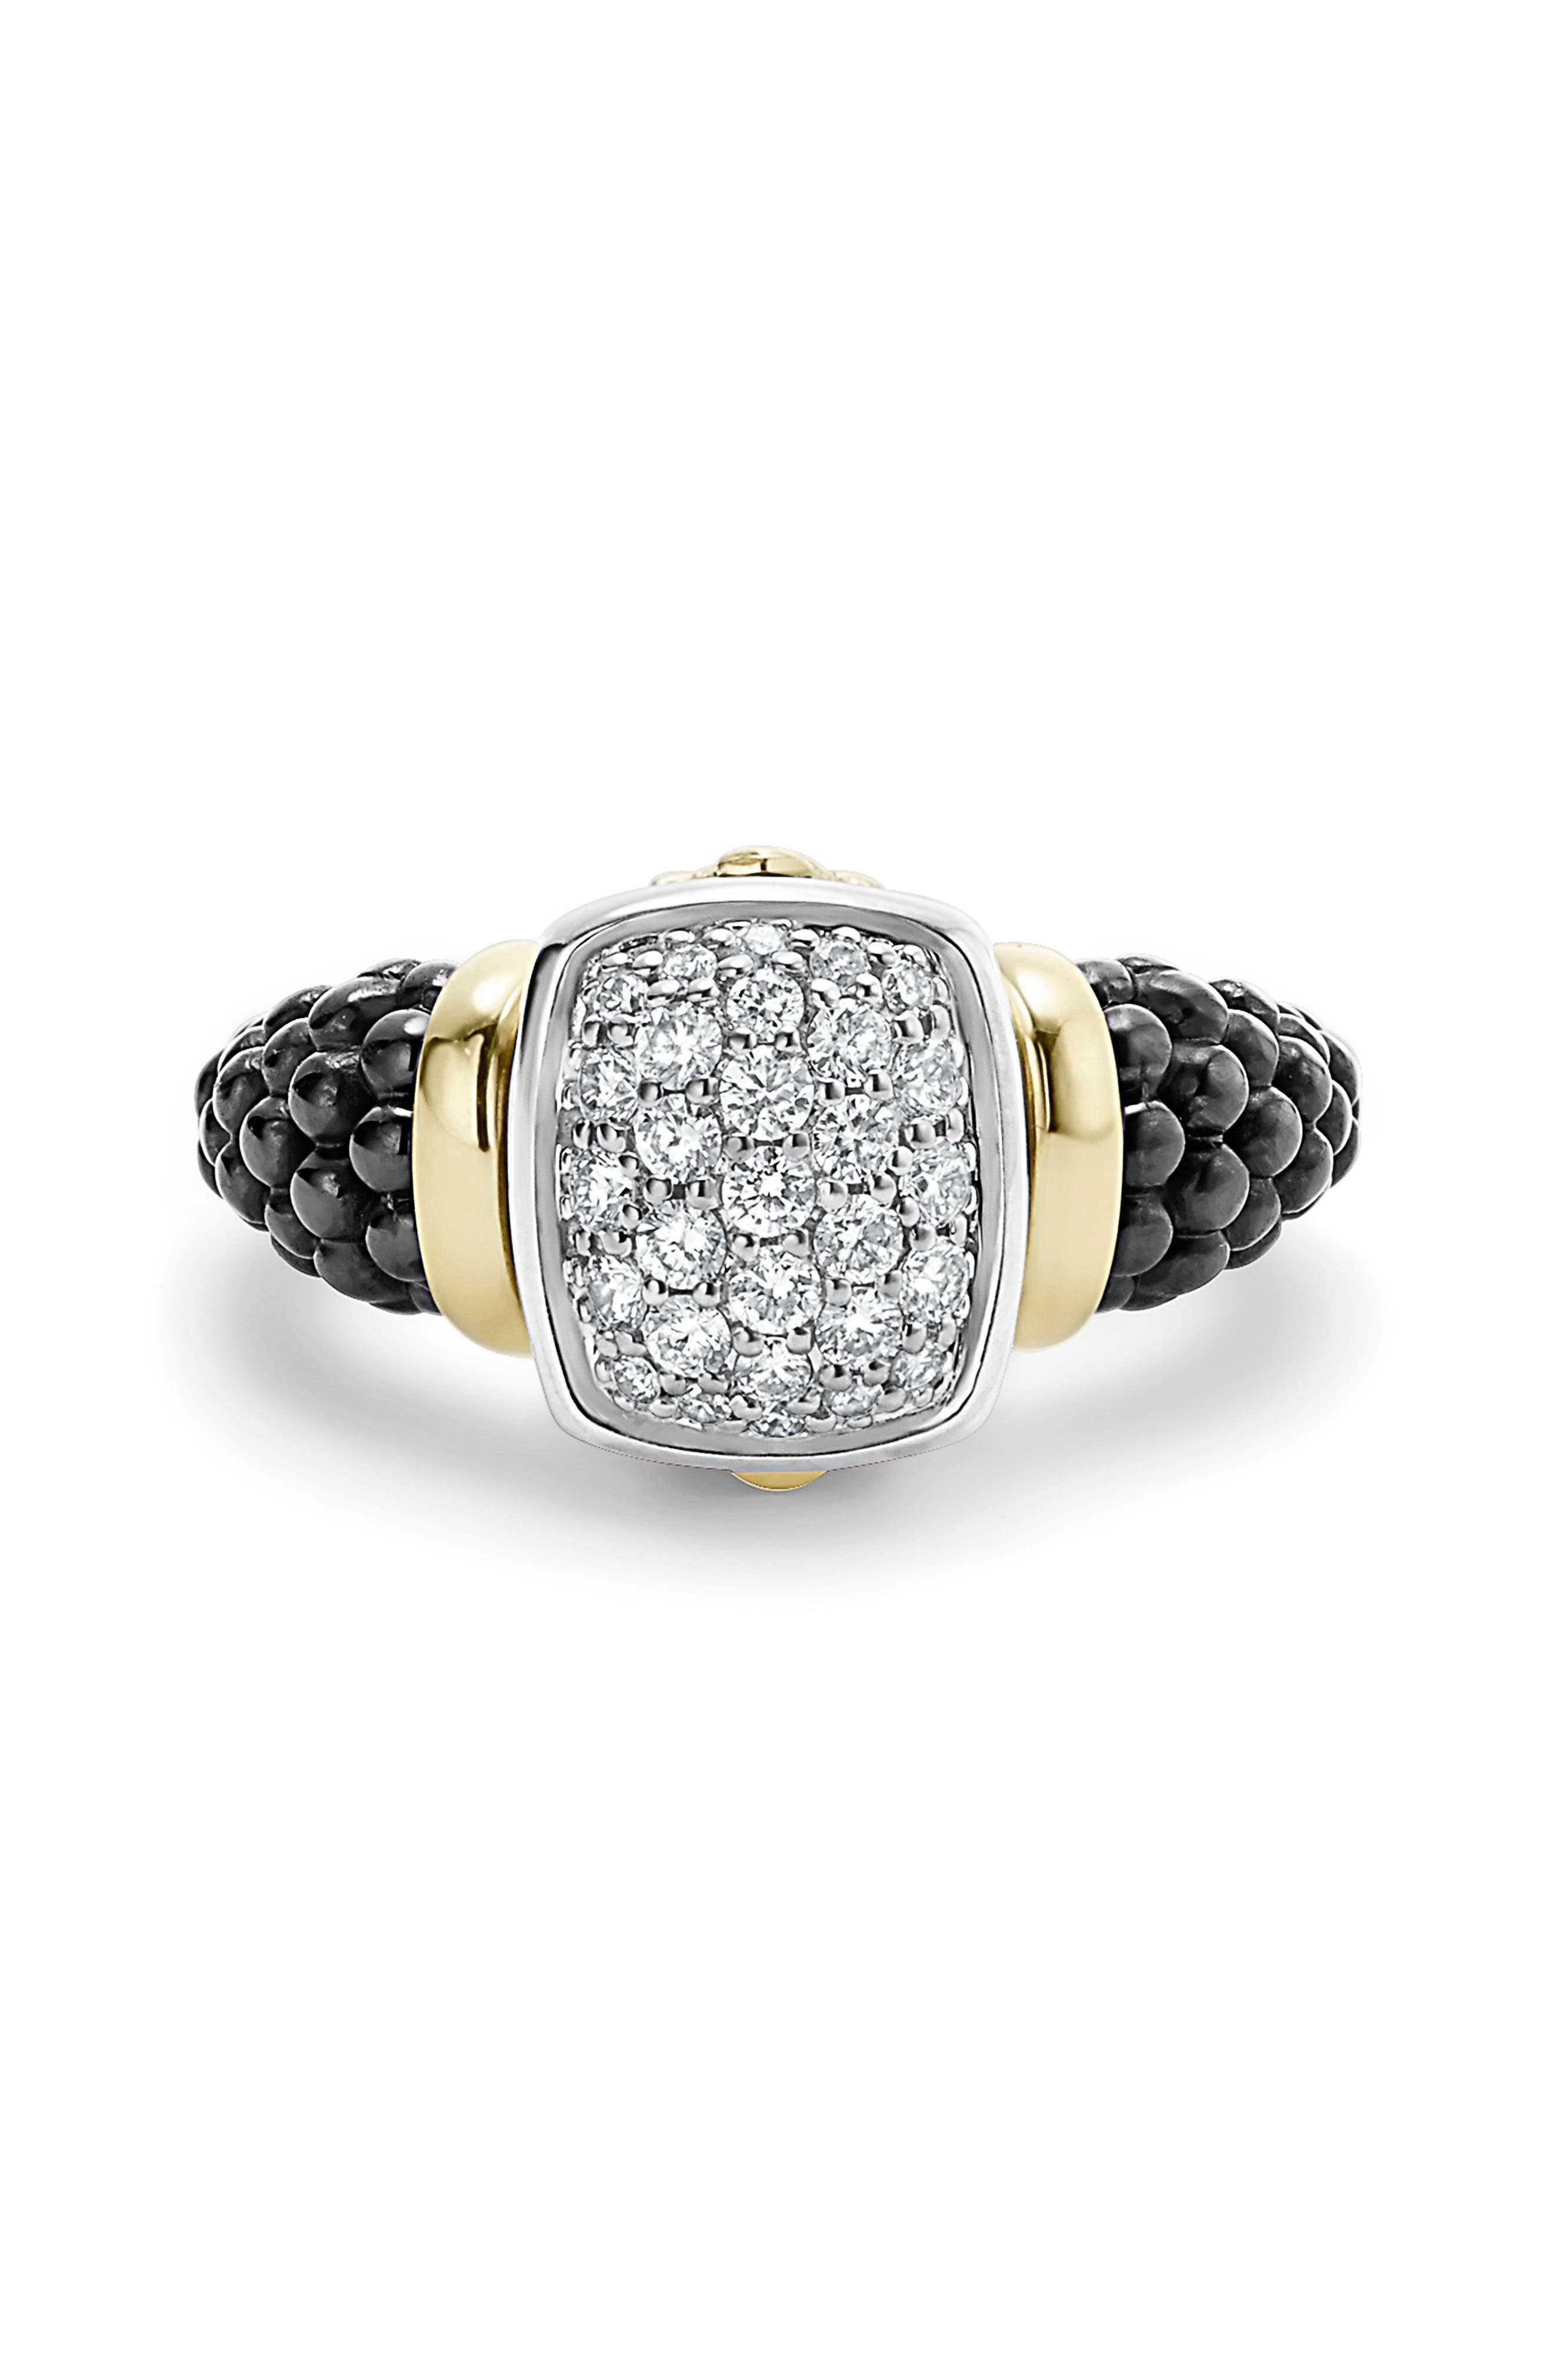 'Caviar' Diamond Ring,                             Alternate thumbnail 4, color,                             BLACK/ GOLD